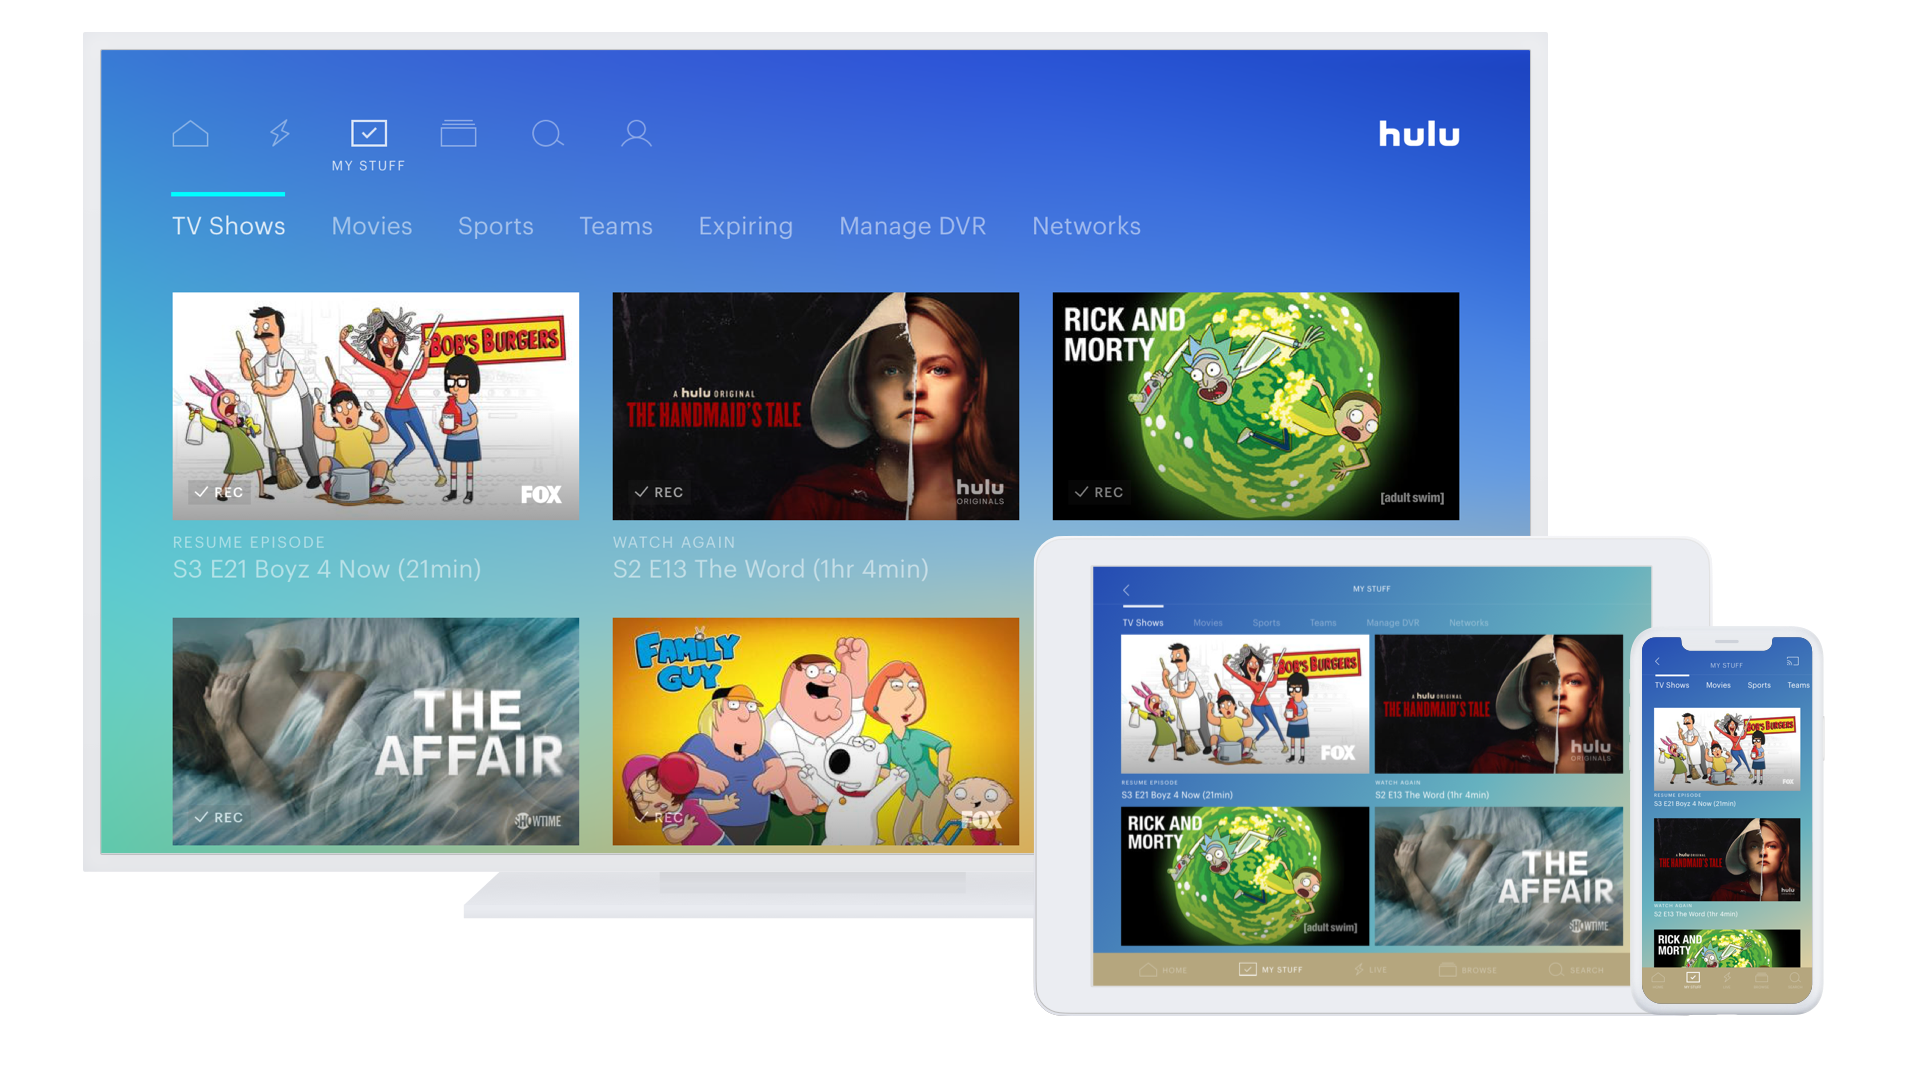 Hulu drops the price for its streaming service to $6 per month, but